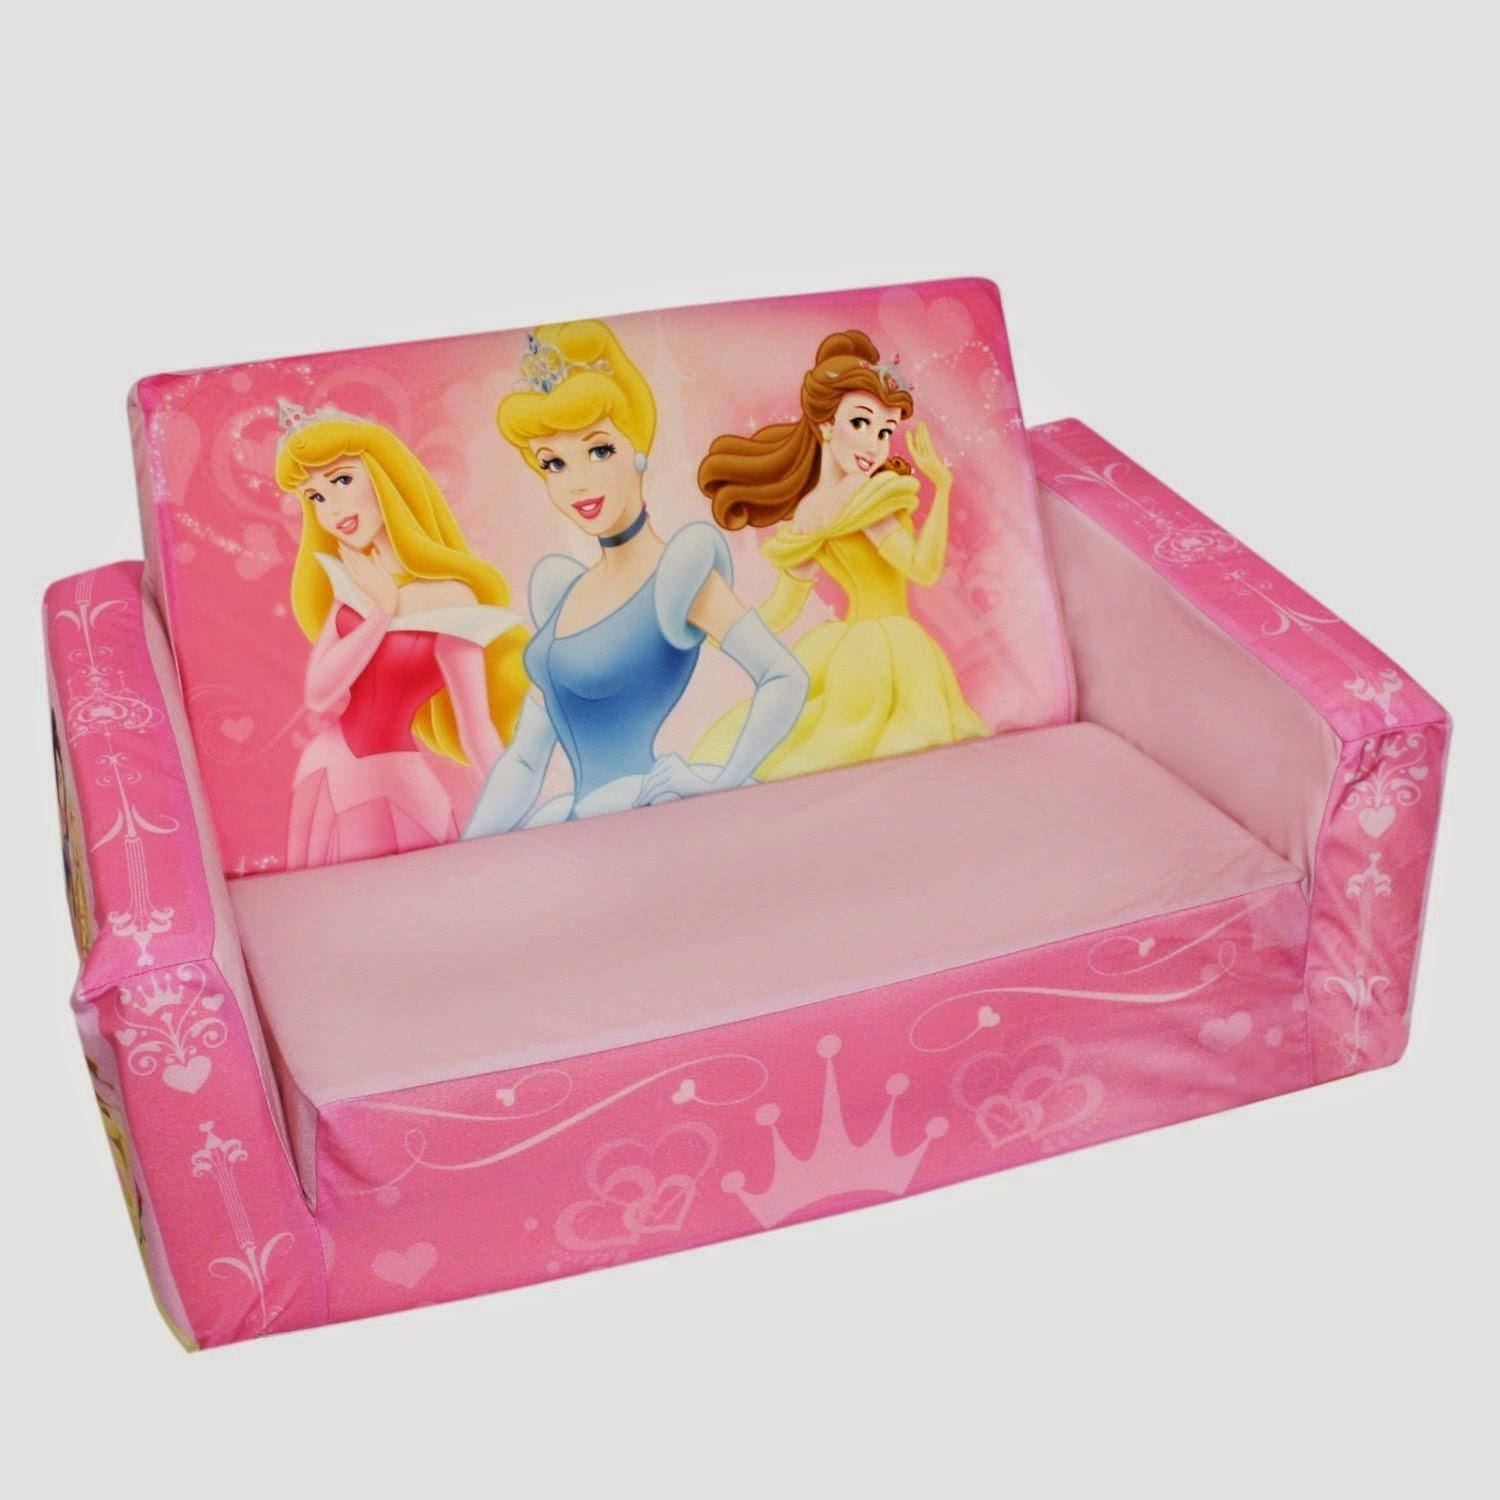 Fold Out Couch Intended For Disney Sofas (View 12 of 20)